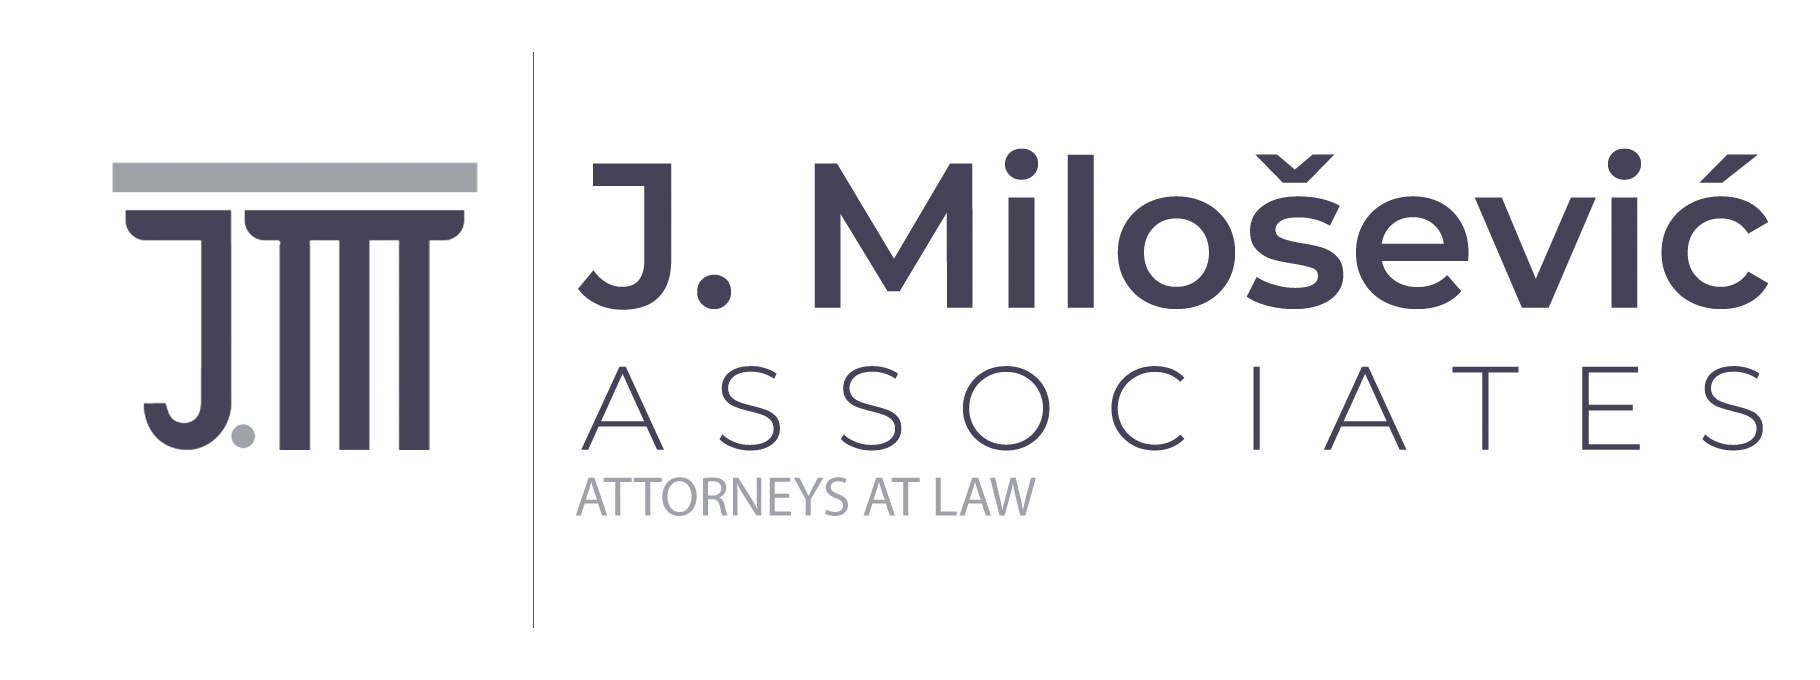 Logo Milosevic accociates attorneys at law